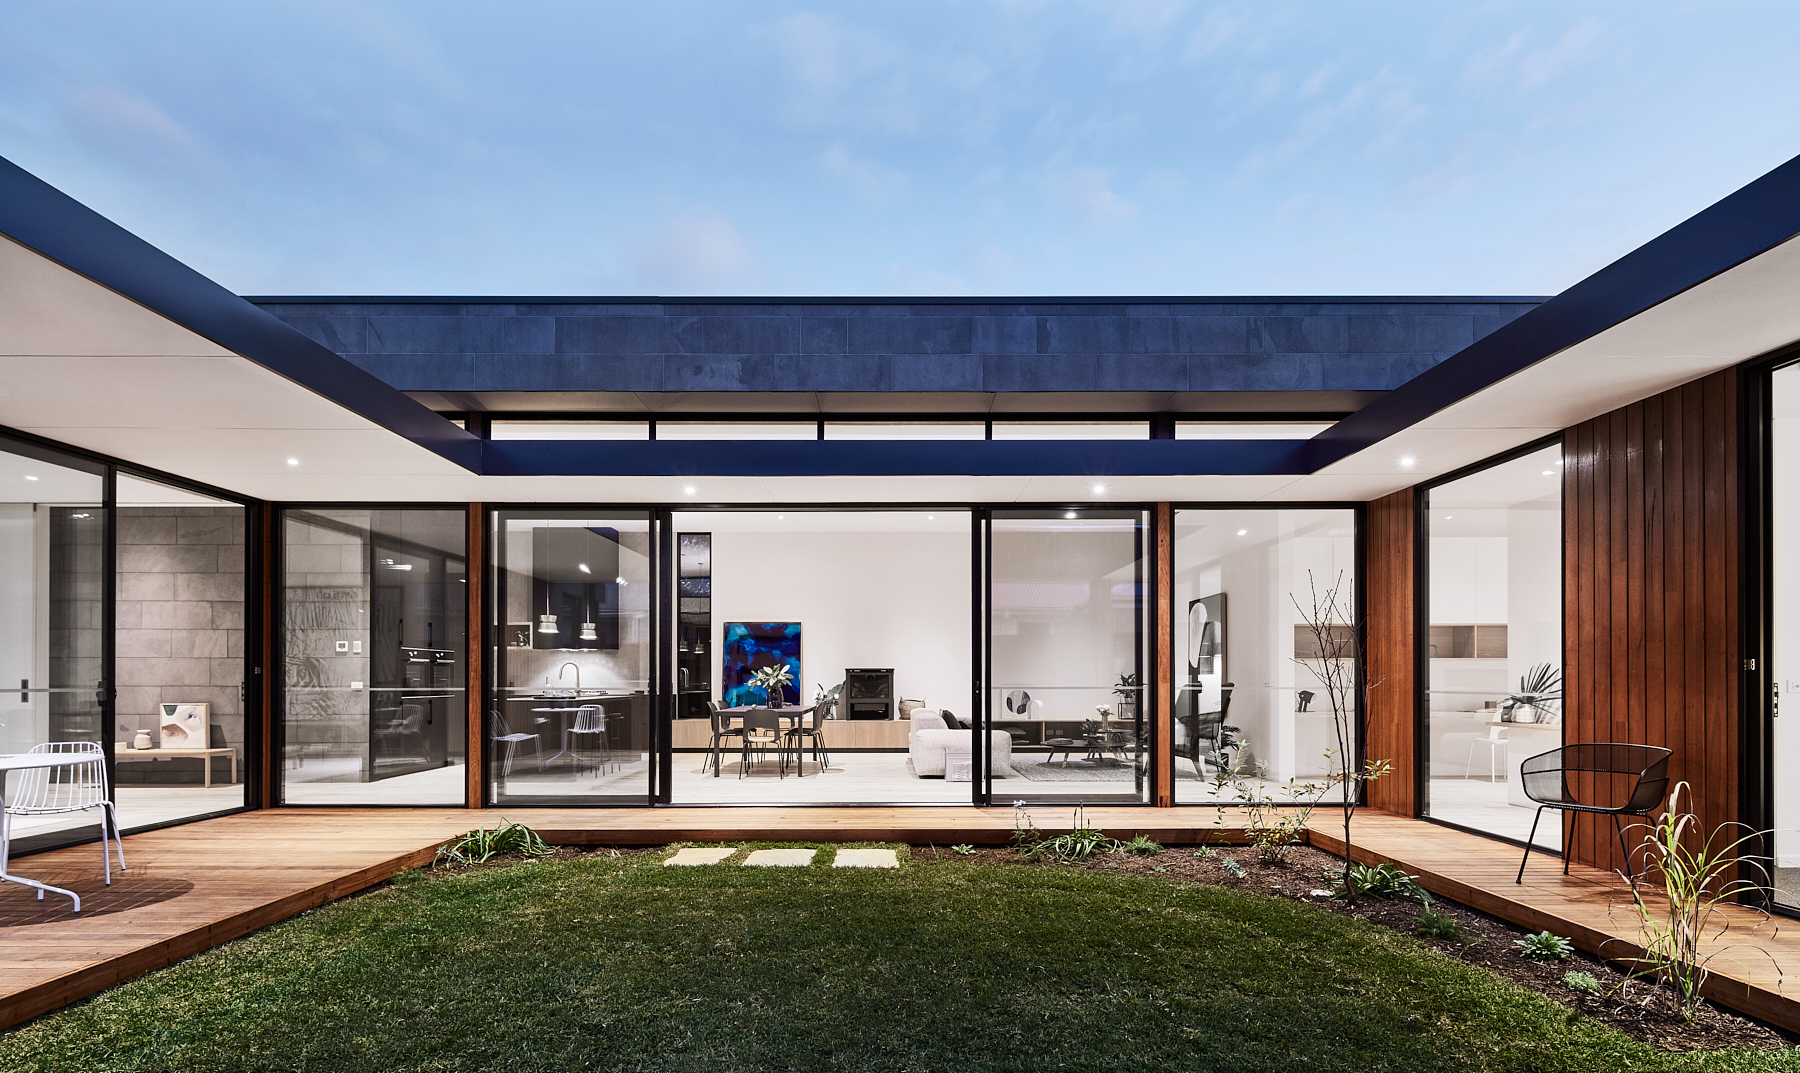 Courtyard House Luxury Homes Melbourne Lifespaces Group Luxury Homes